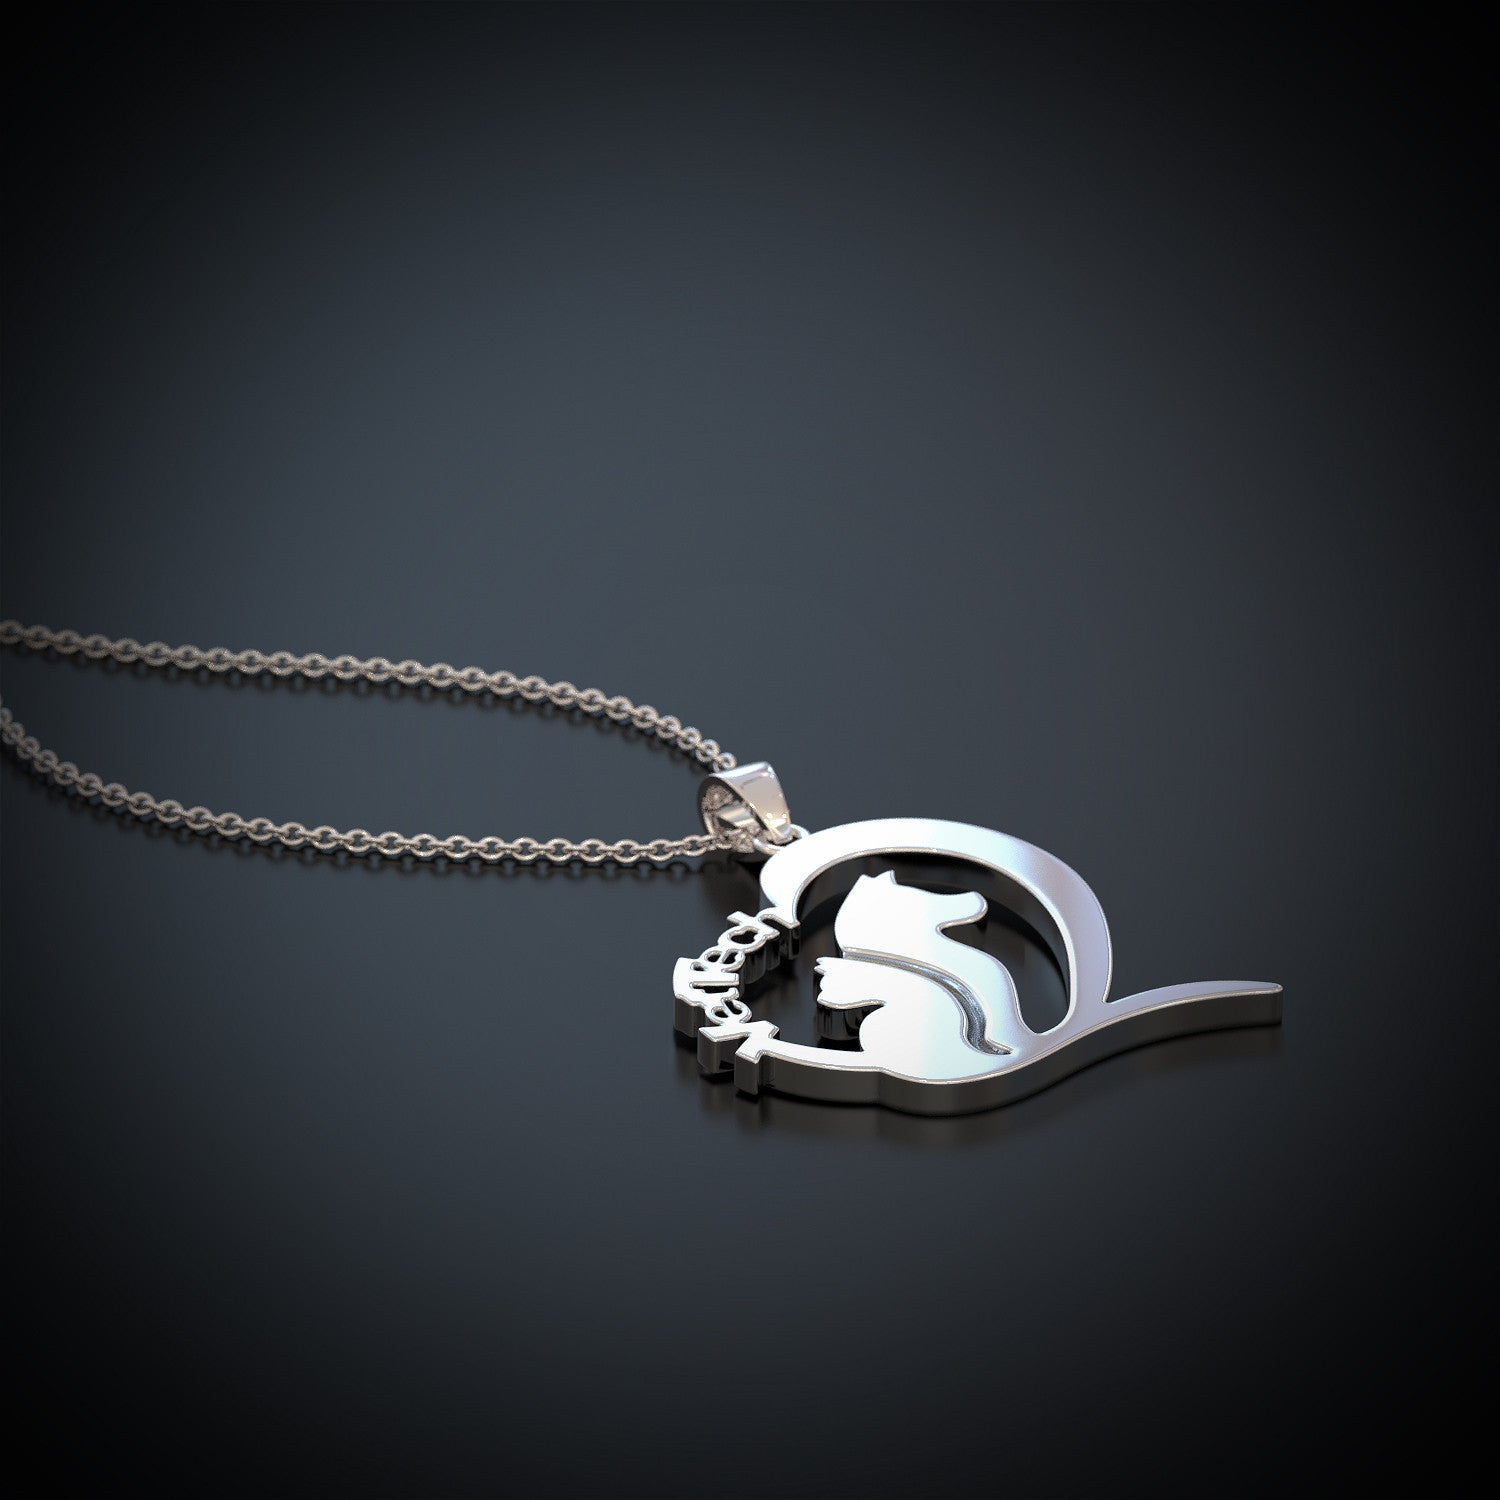 Vet Tech Heart Pendant Necklace